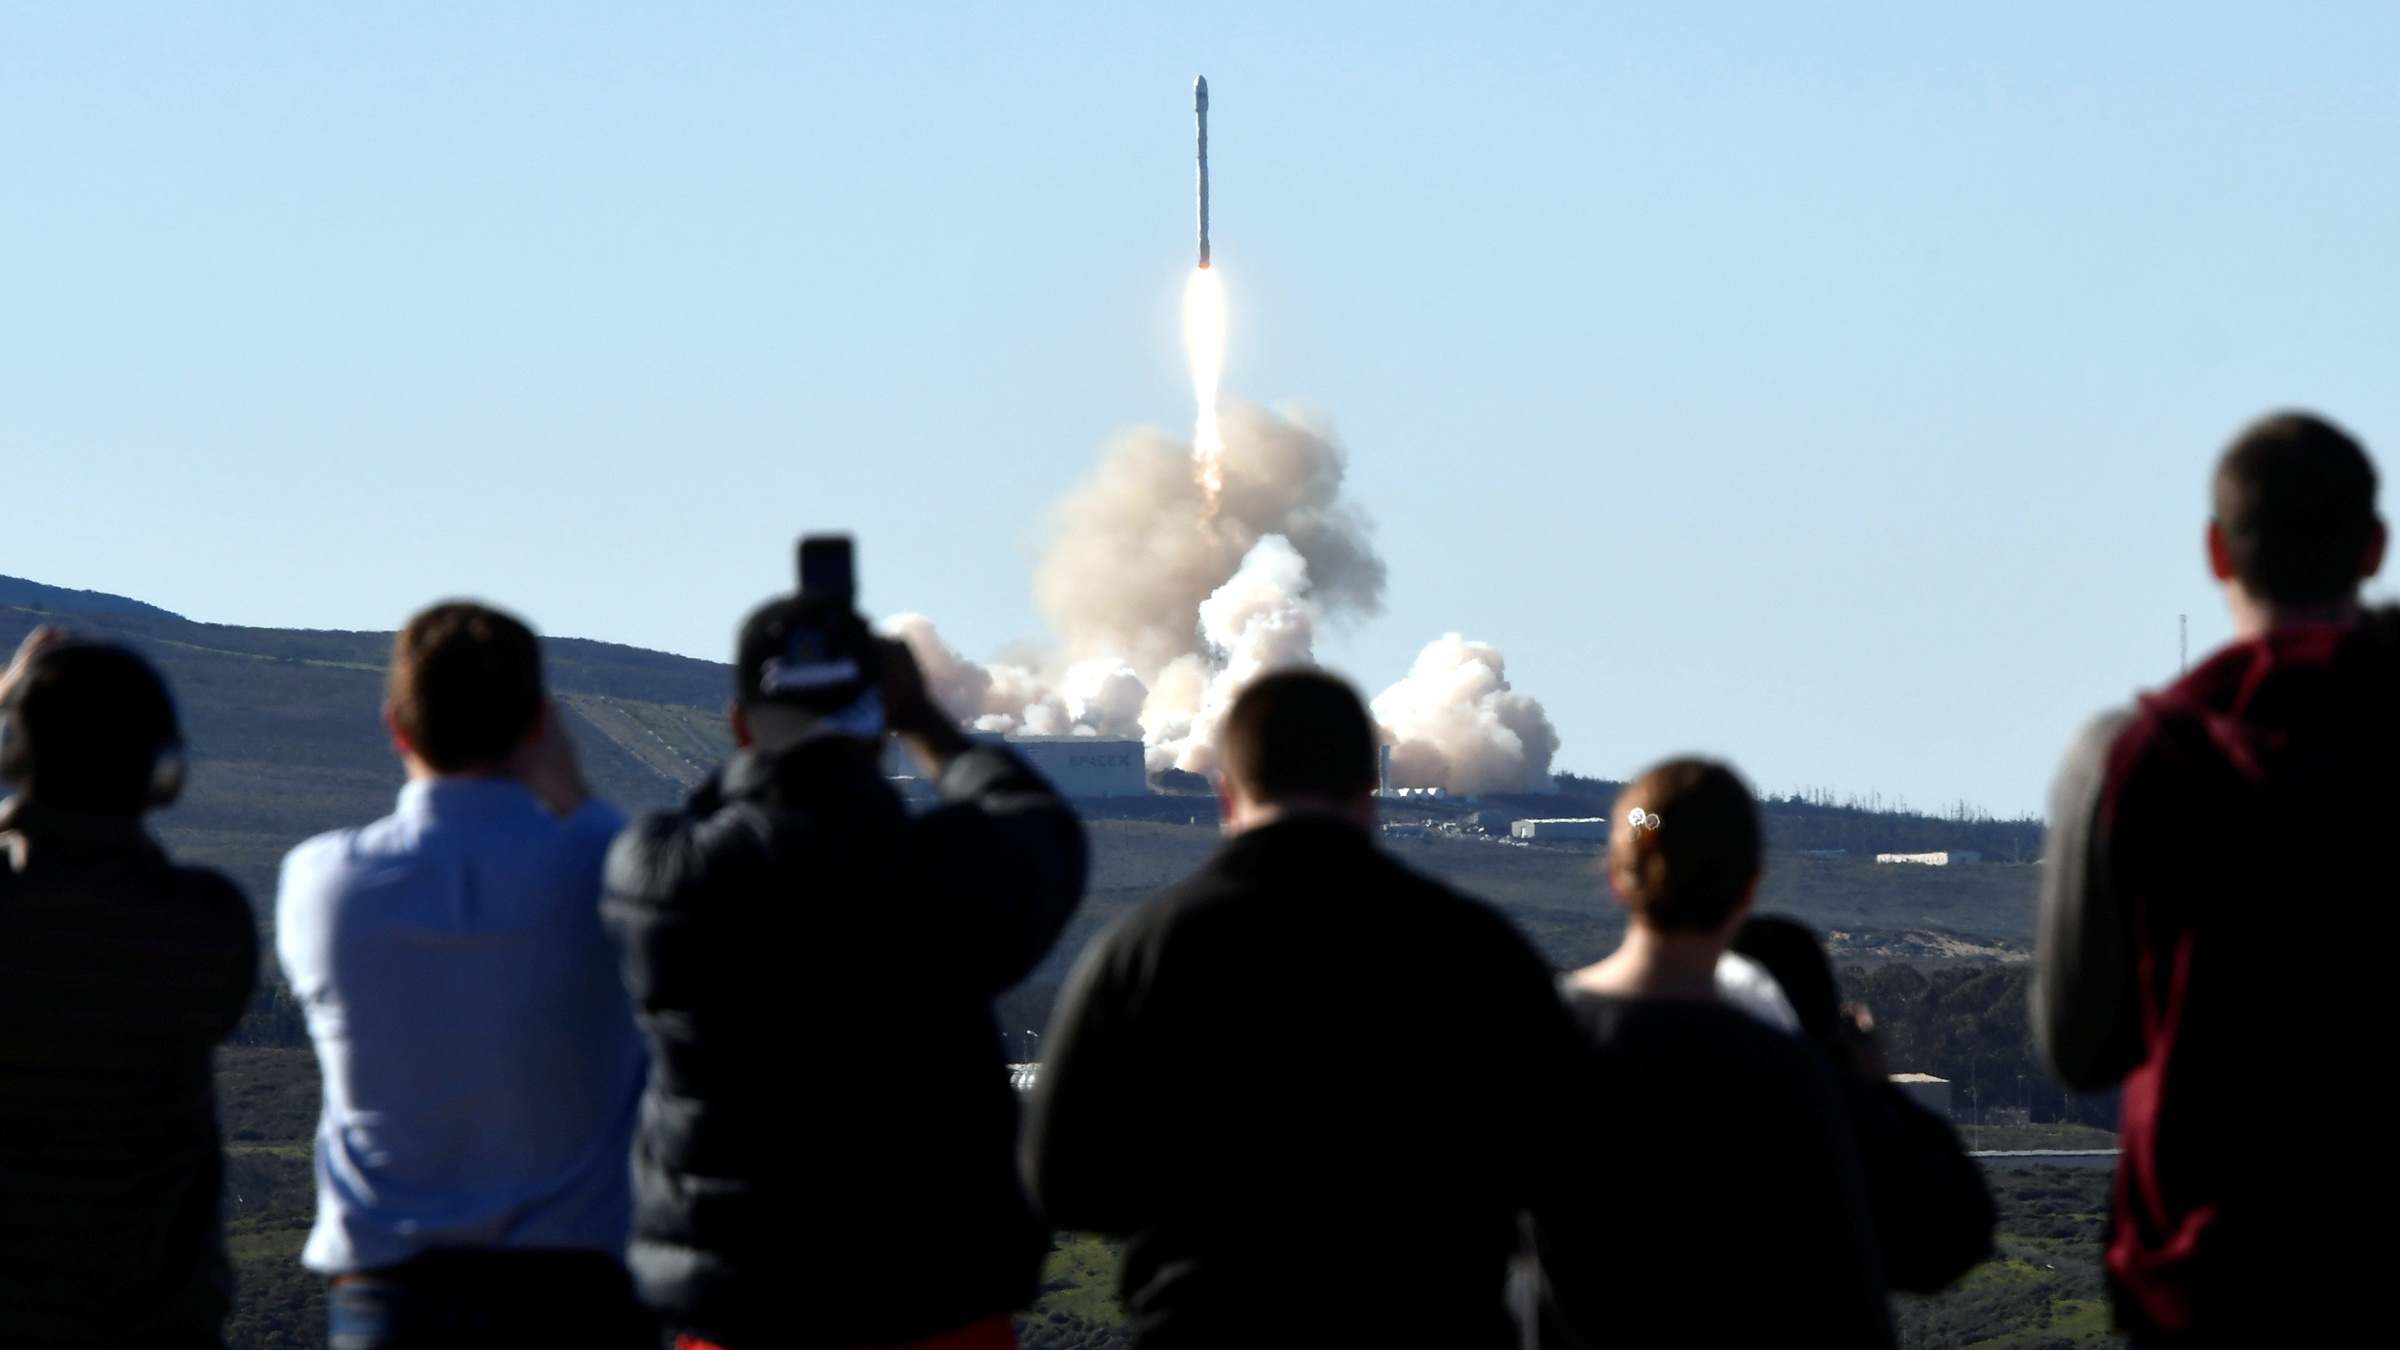 SpaceX Falcon rocket lifts off from Space Launch Complex 4E at Vandenberg Air Force Base, California, U.S., January 14, 2017.